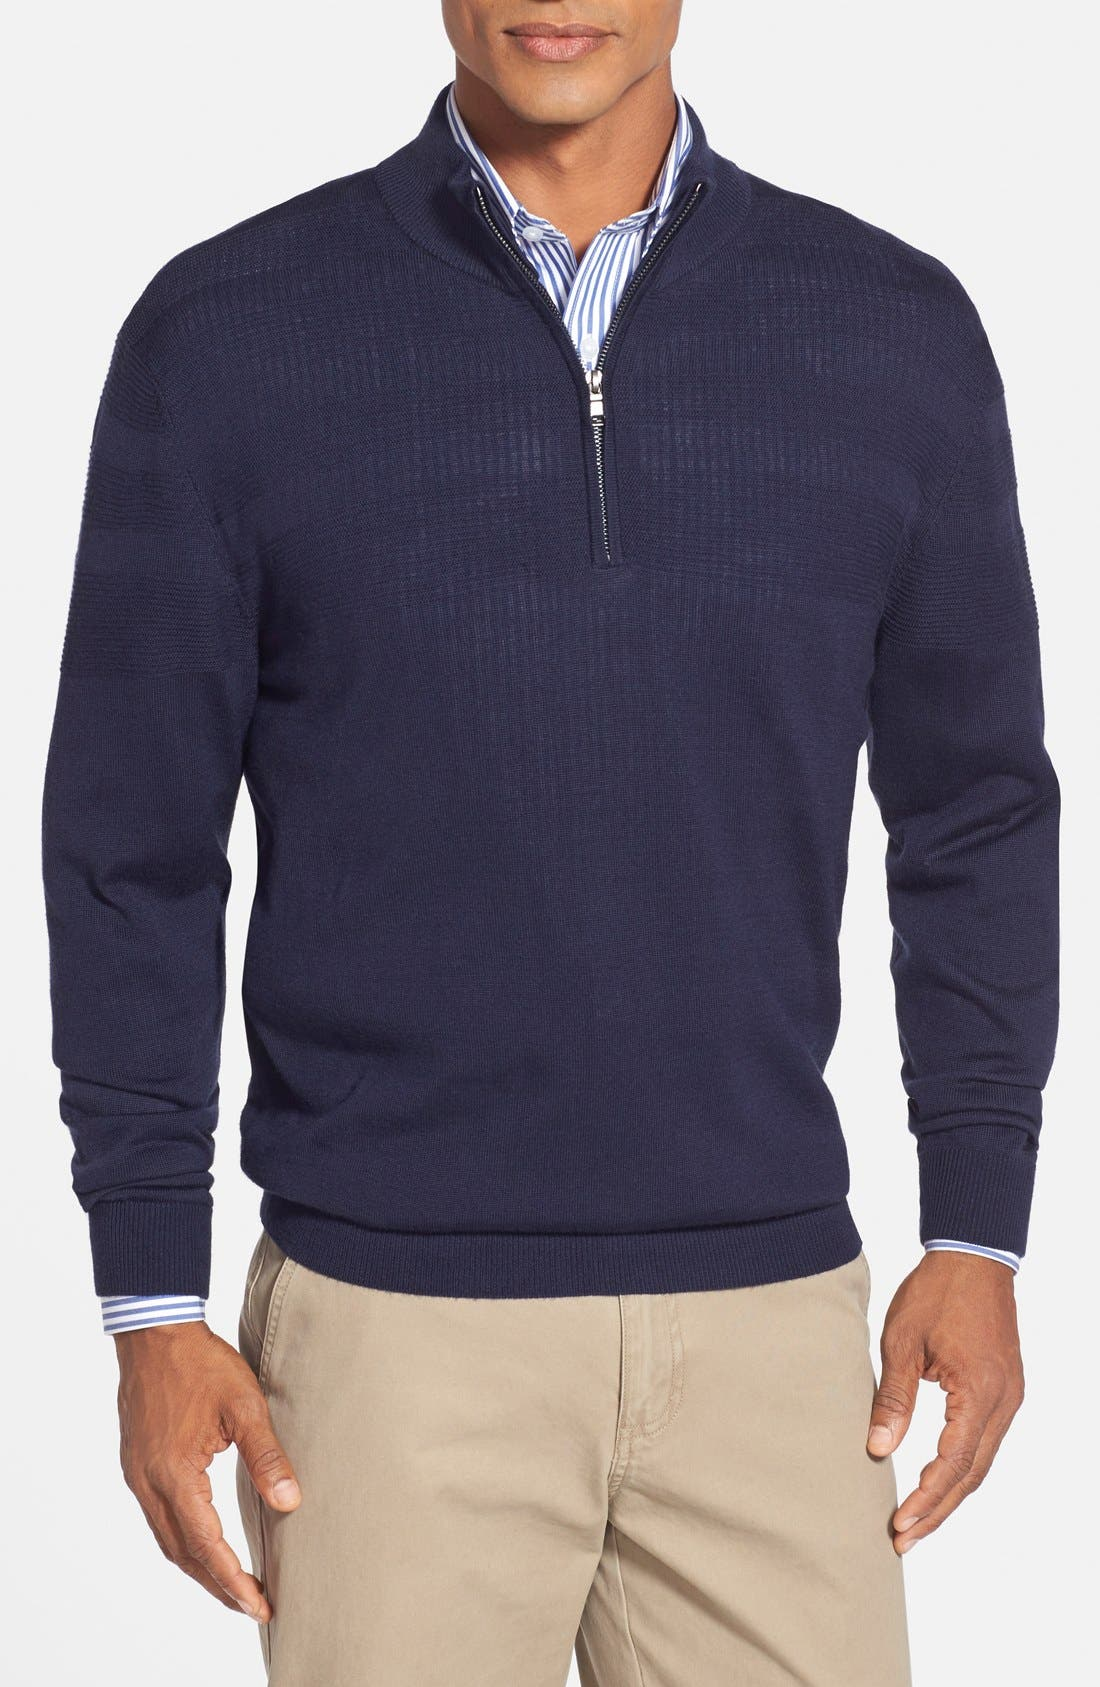 Cutter & Buck 'Douglas' Merino Wool Blend Half Zip Sweater (Big & Tall)